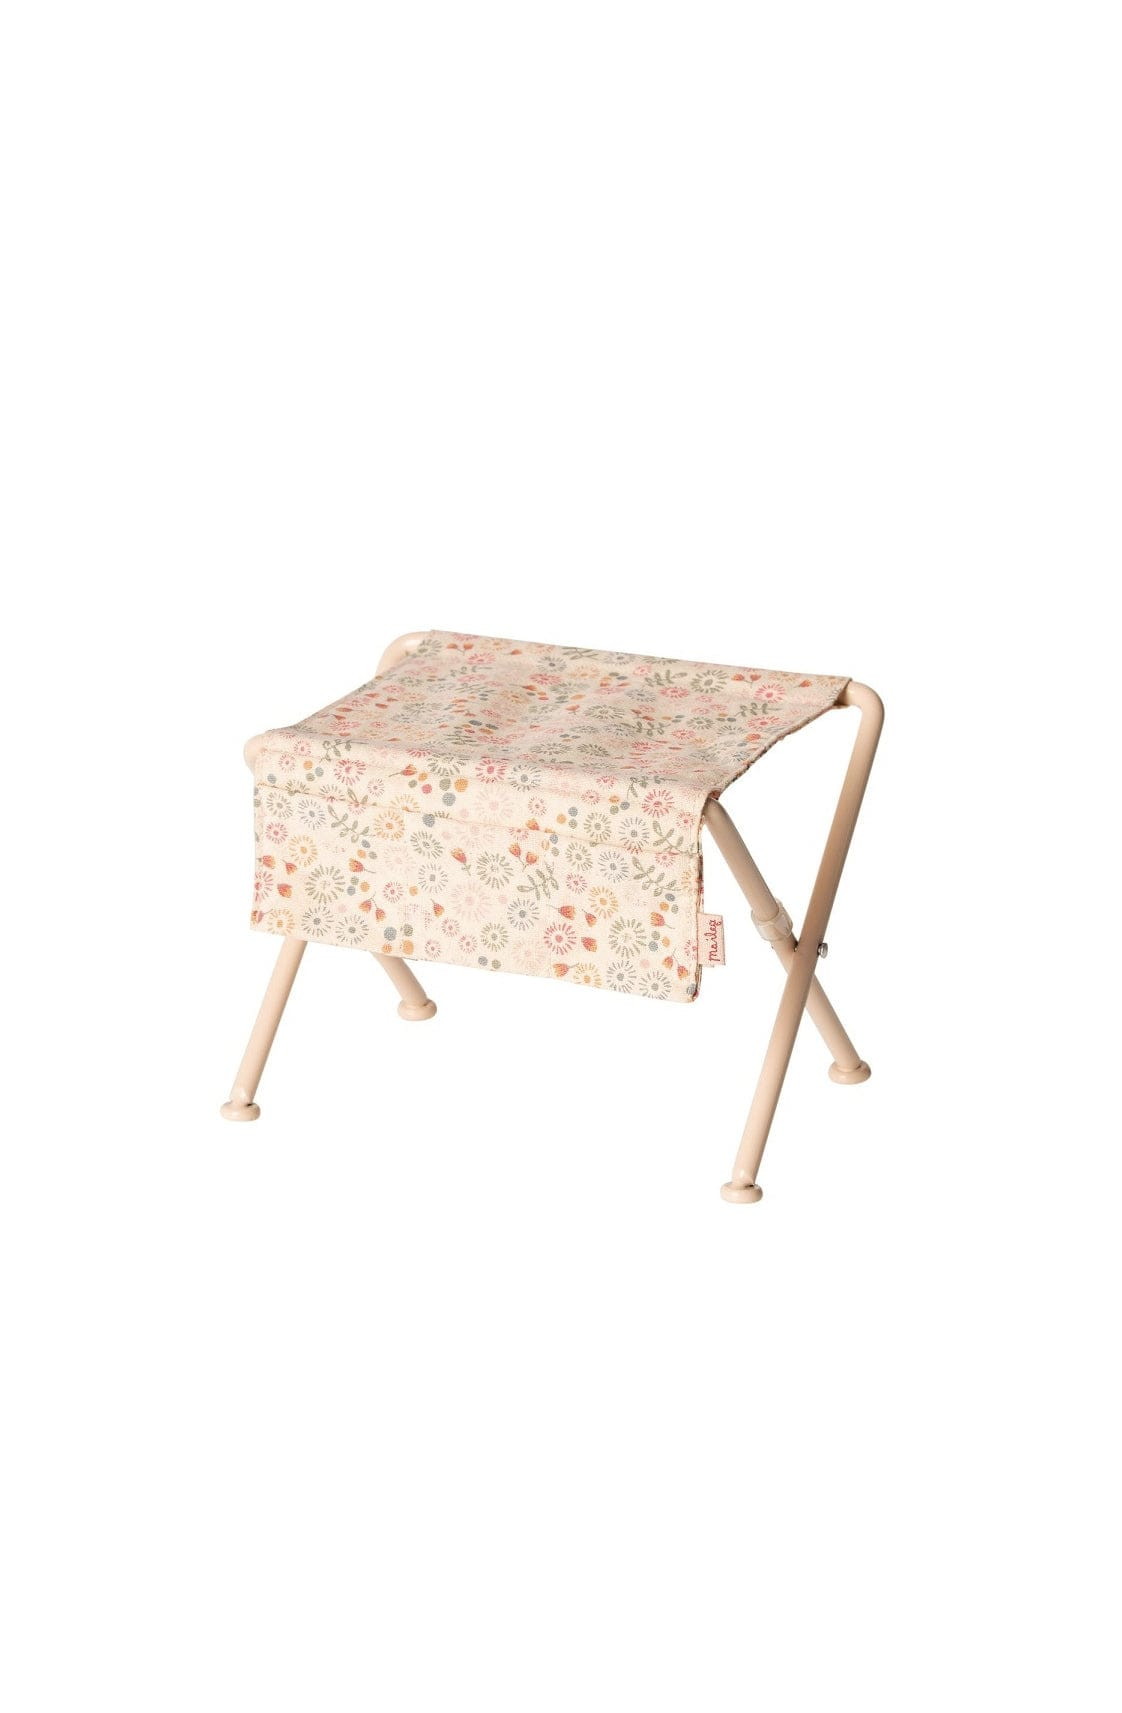 Maileg Nursery Table - Hello Little Birdie